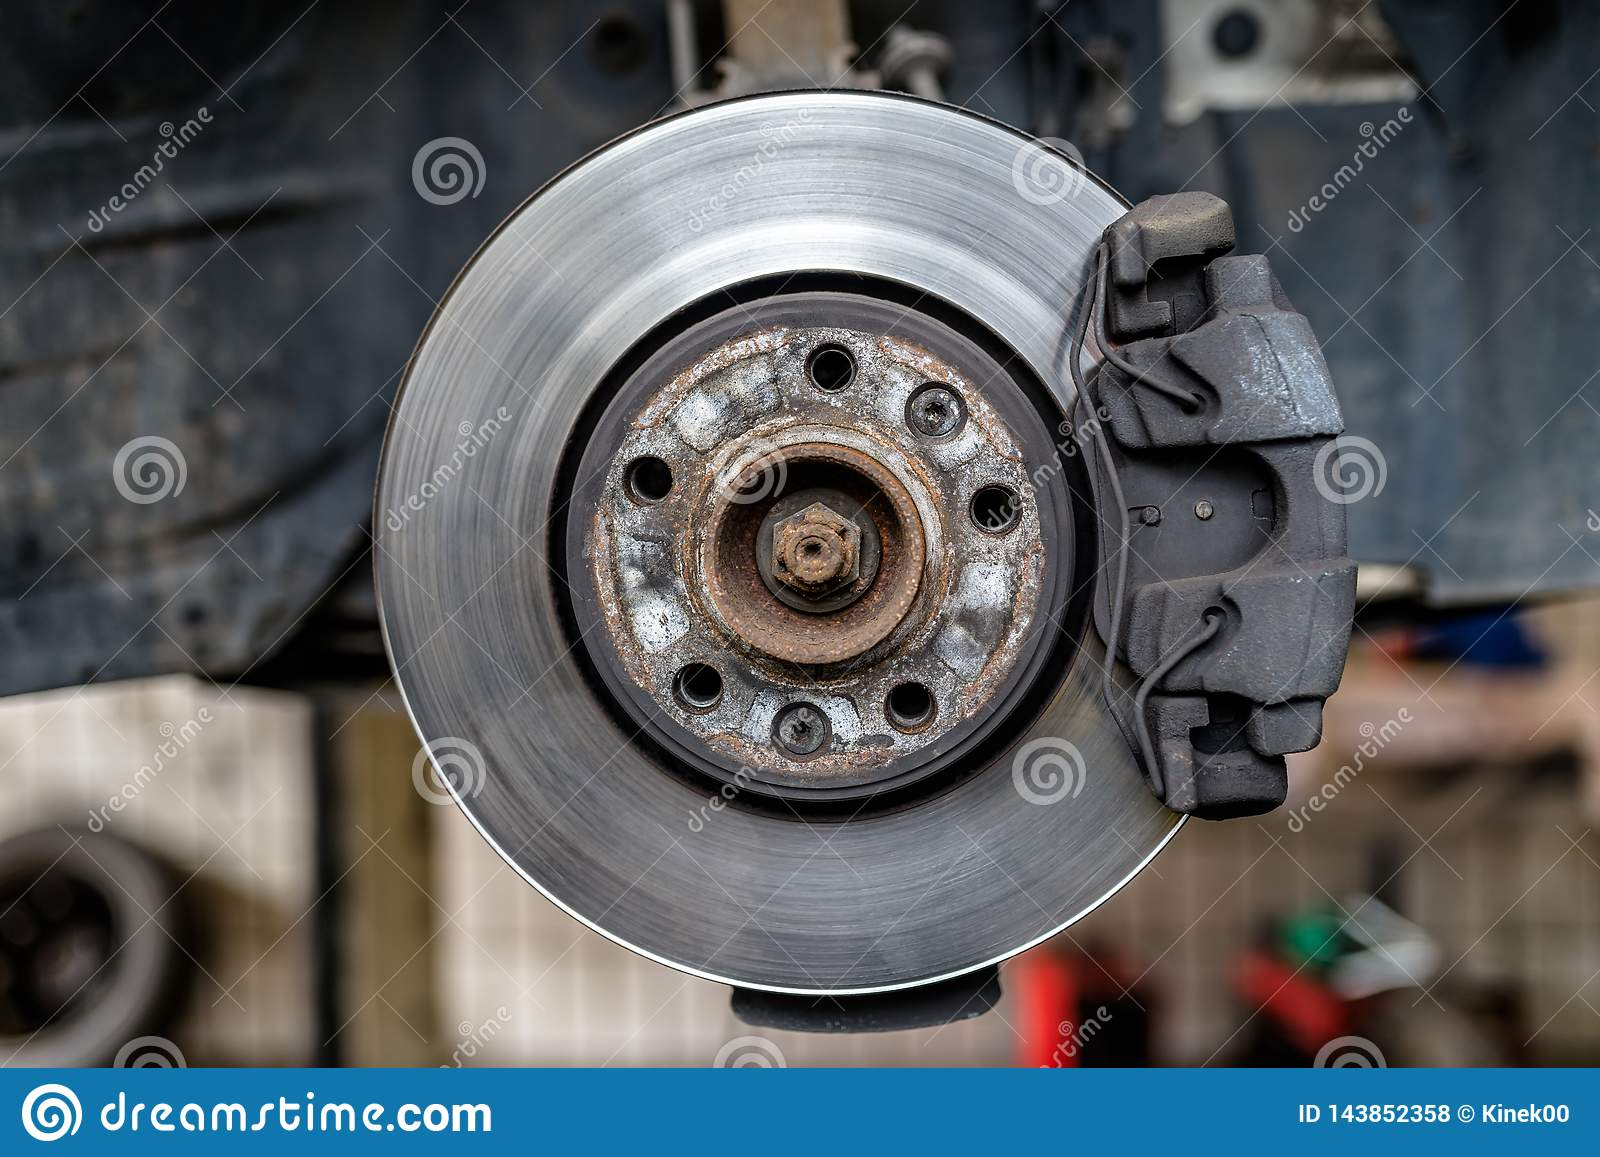 Car Brake Pads >> Front Brake Discs With Caliper And Brake Pads In The Car On